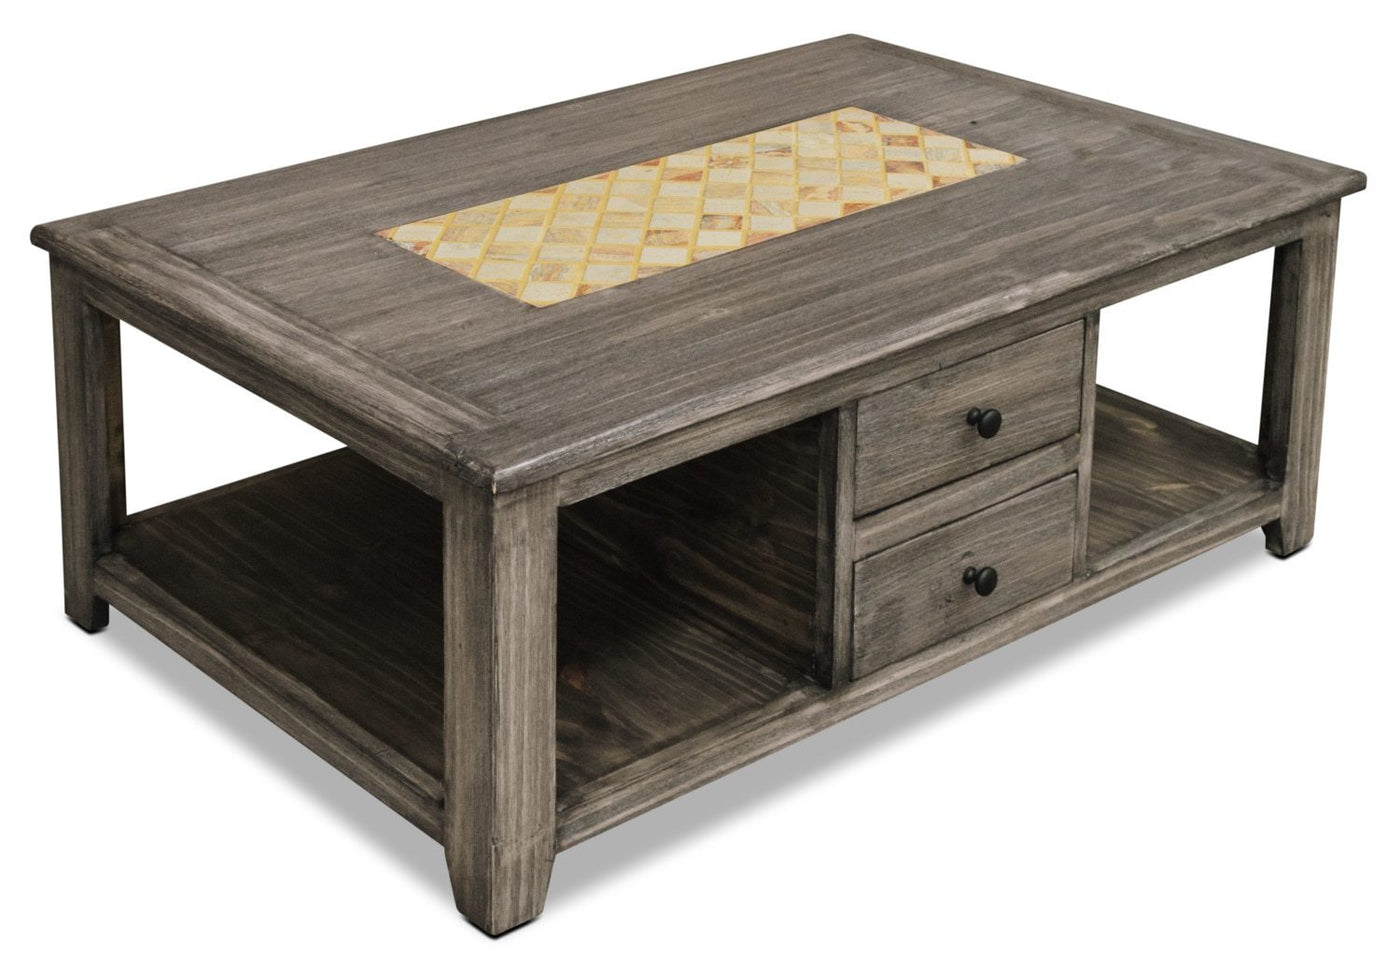 Solid Pine Coffee Table.Reidville Solid Pine Coffee Table With Marble Inset Grey